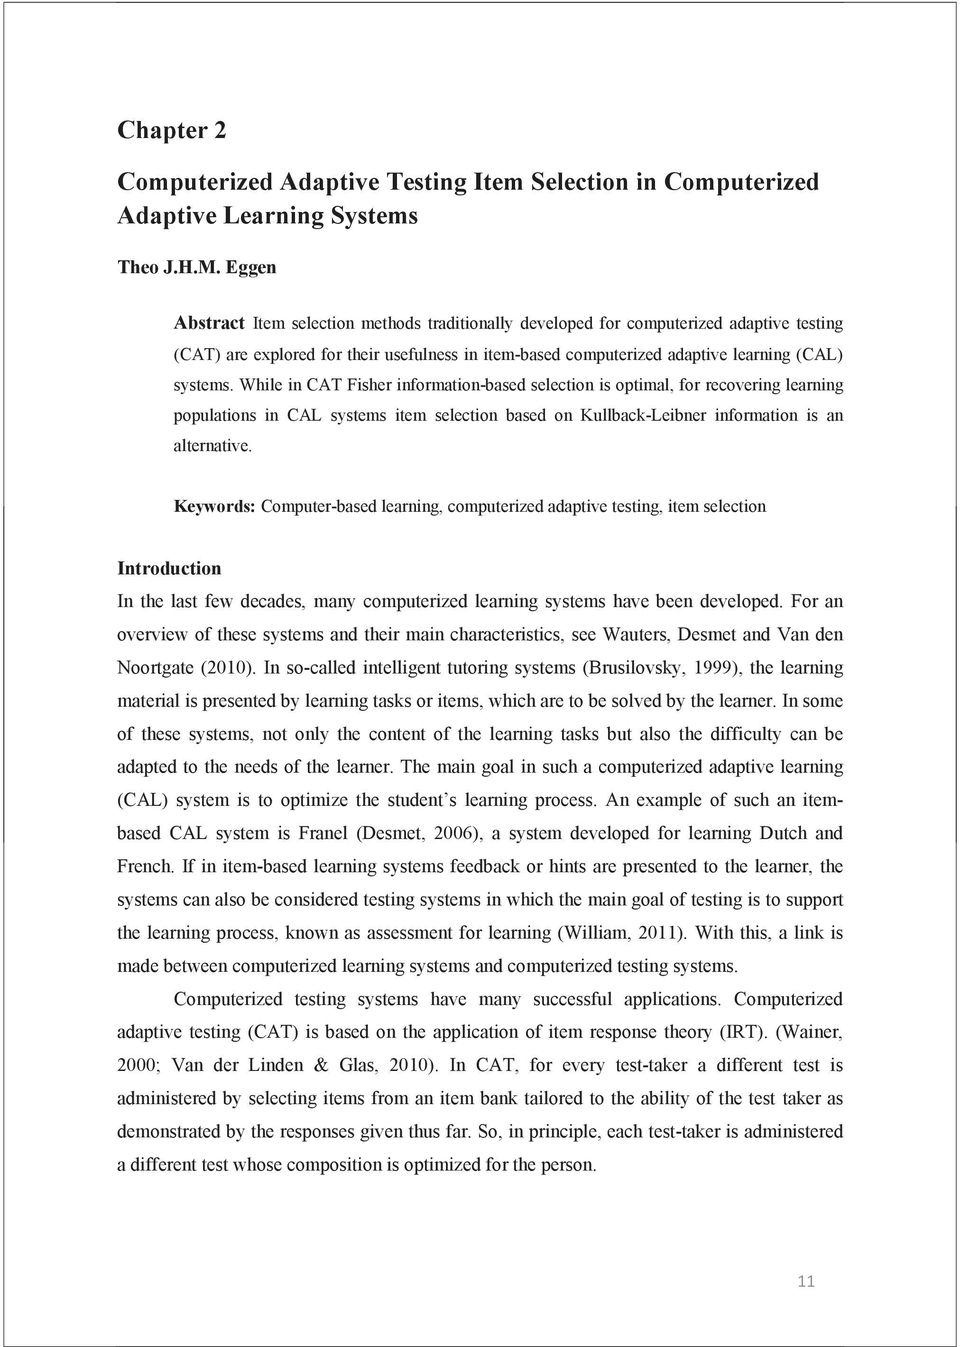 While in CAT Fisher information-based selection is optimal, for recovering learning populations in CAL systems item selection based on Kullback-Leibner information is an alternative.